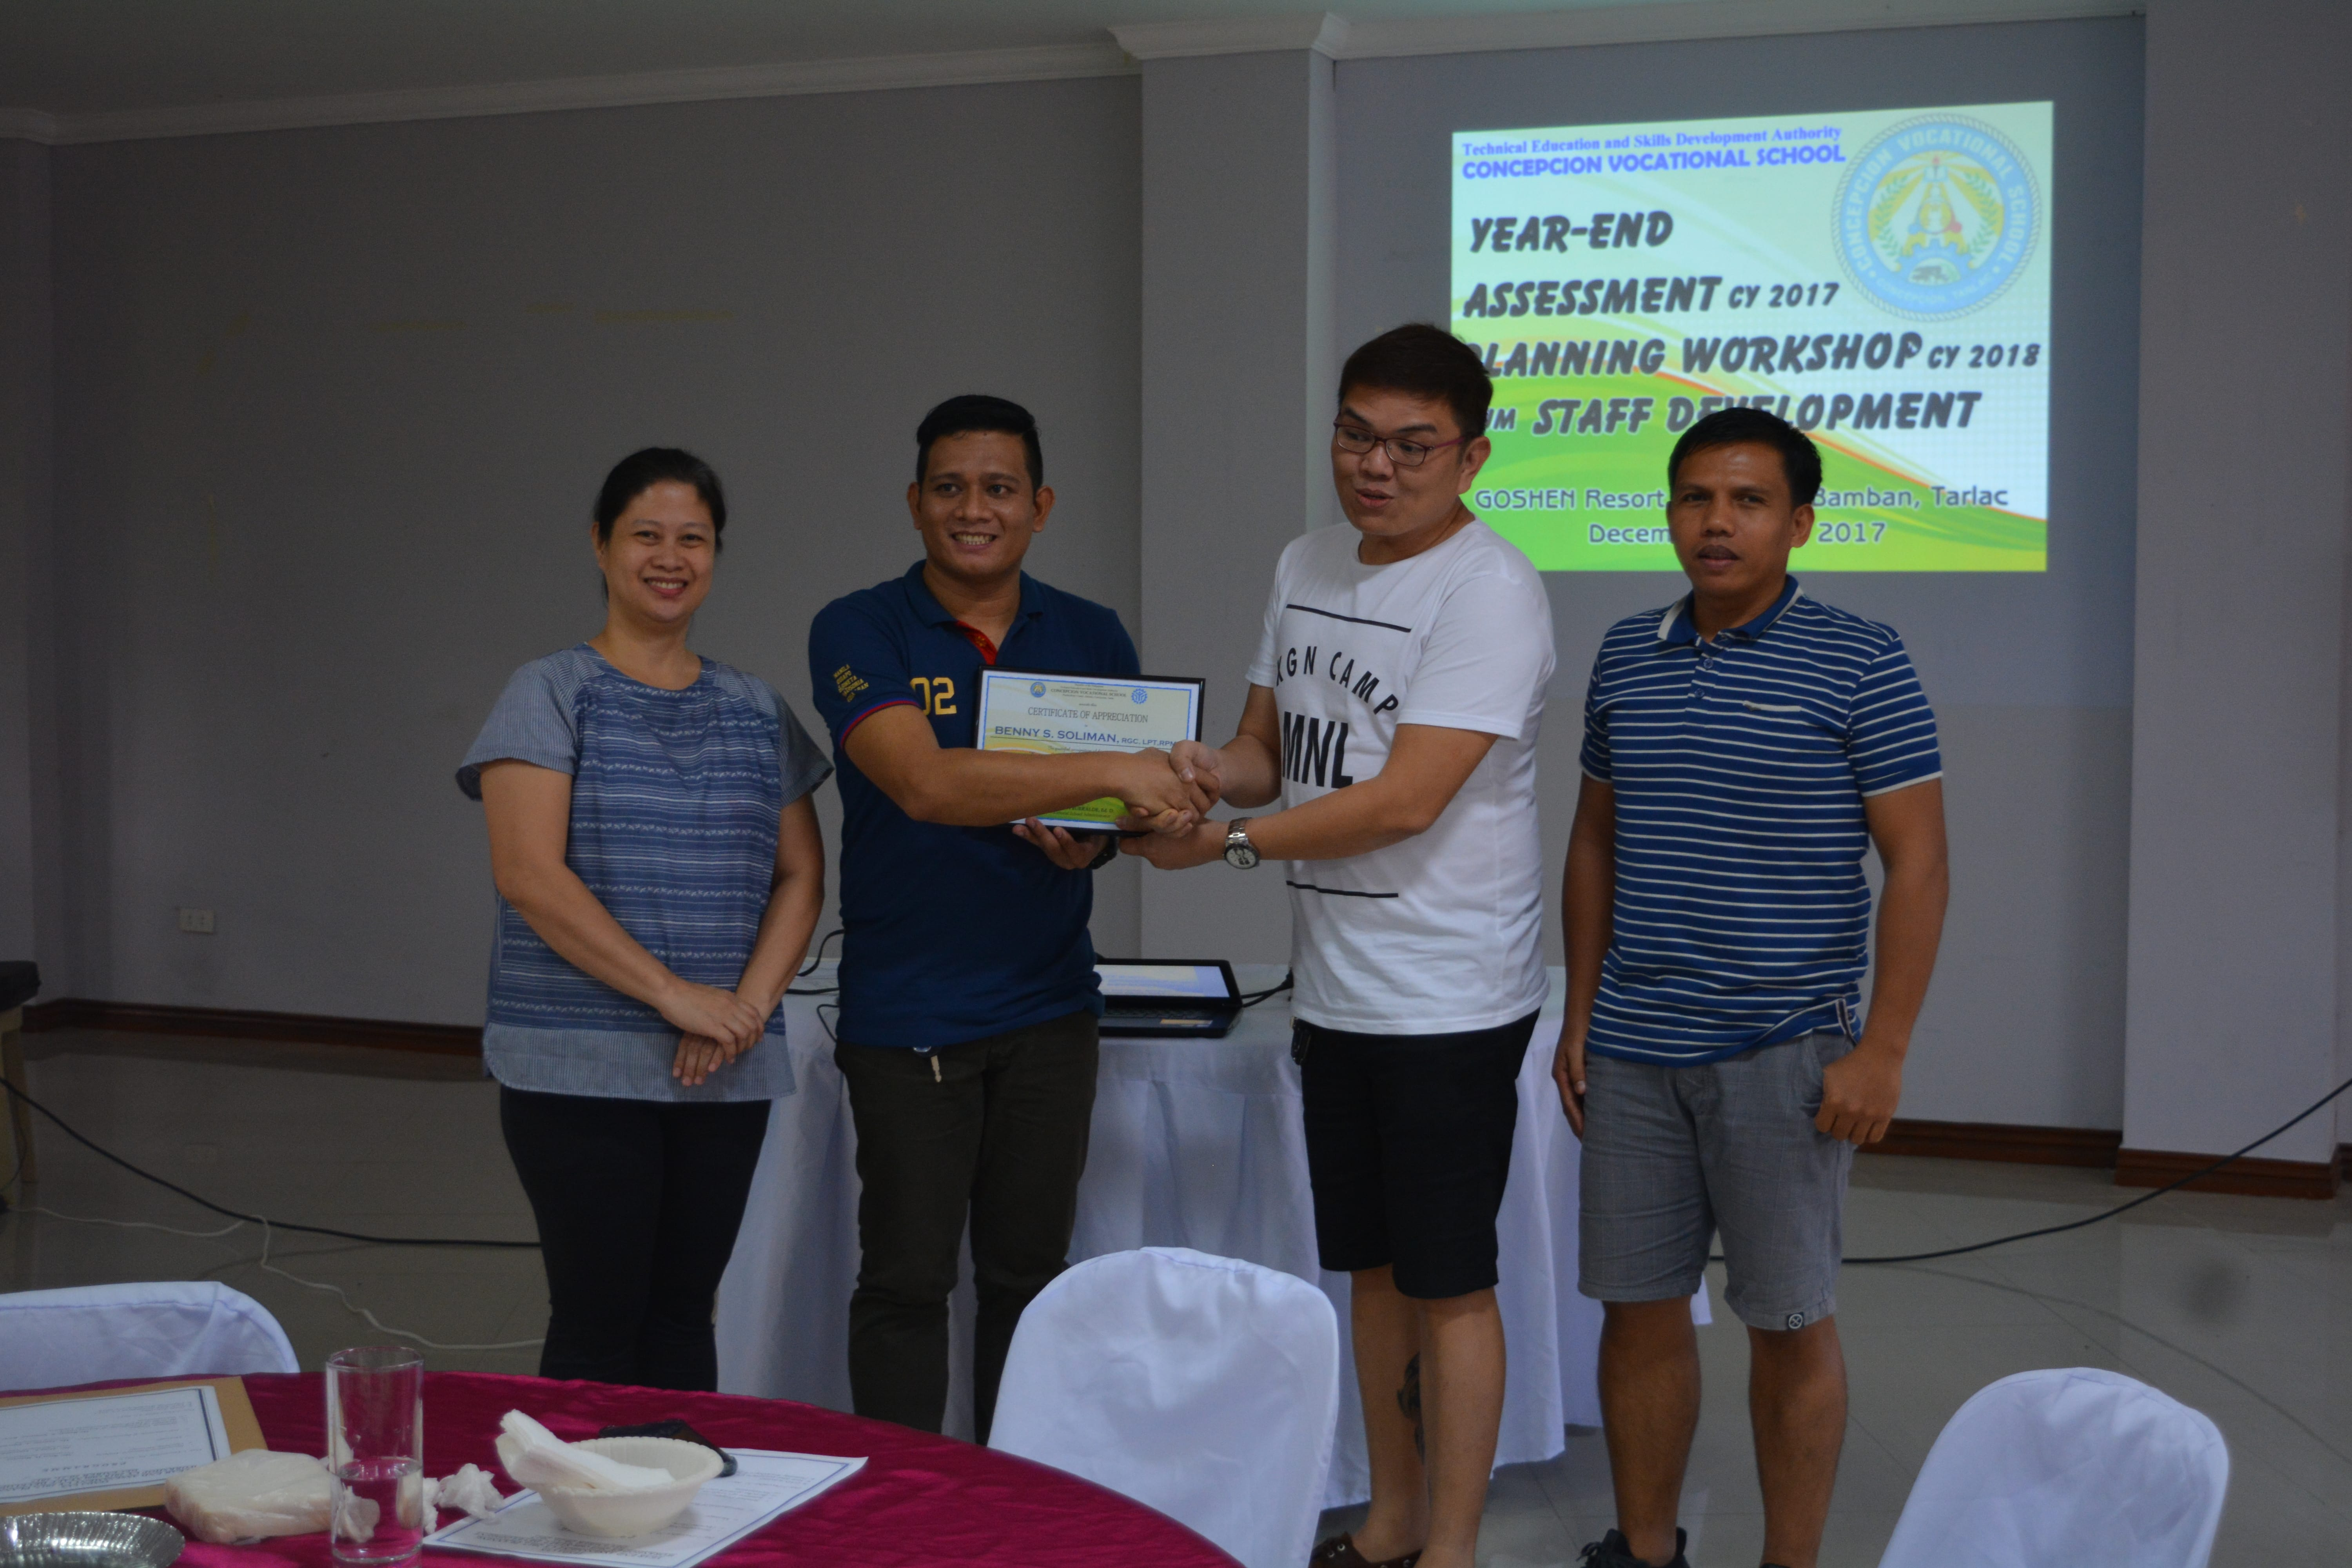 Year End Assessment 2017 and Planning Workshop 2018